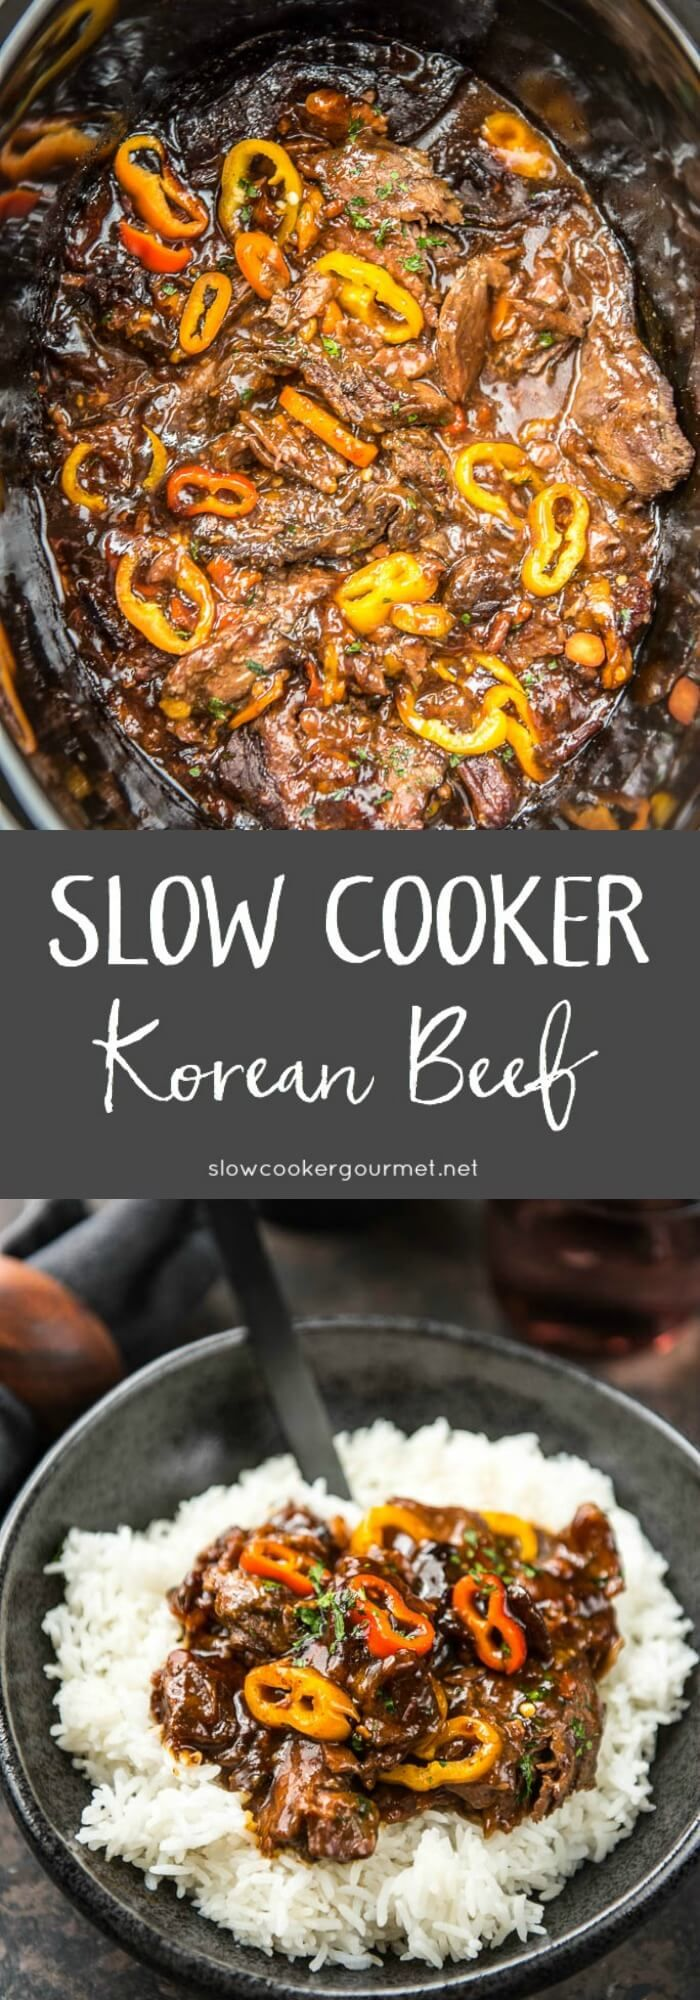 A quick and easy slow cooker meal perfect for family dinners! Tender beef and sweet peppers with a super tasty sauce!